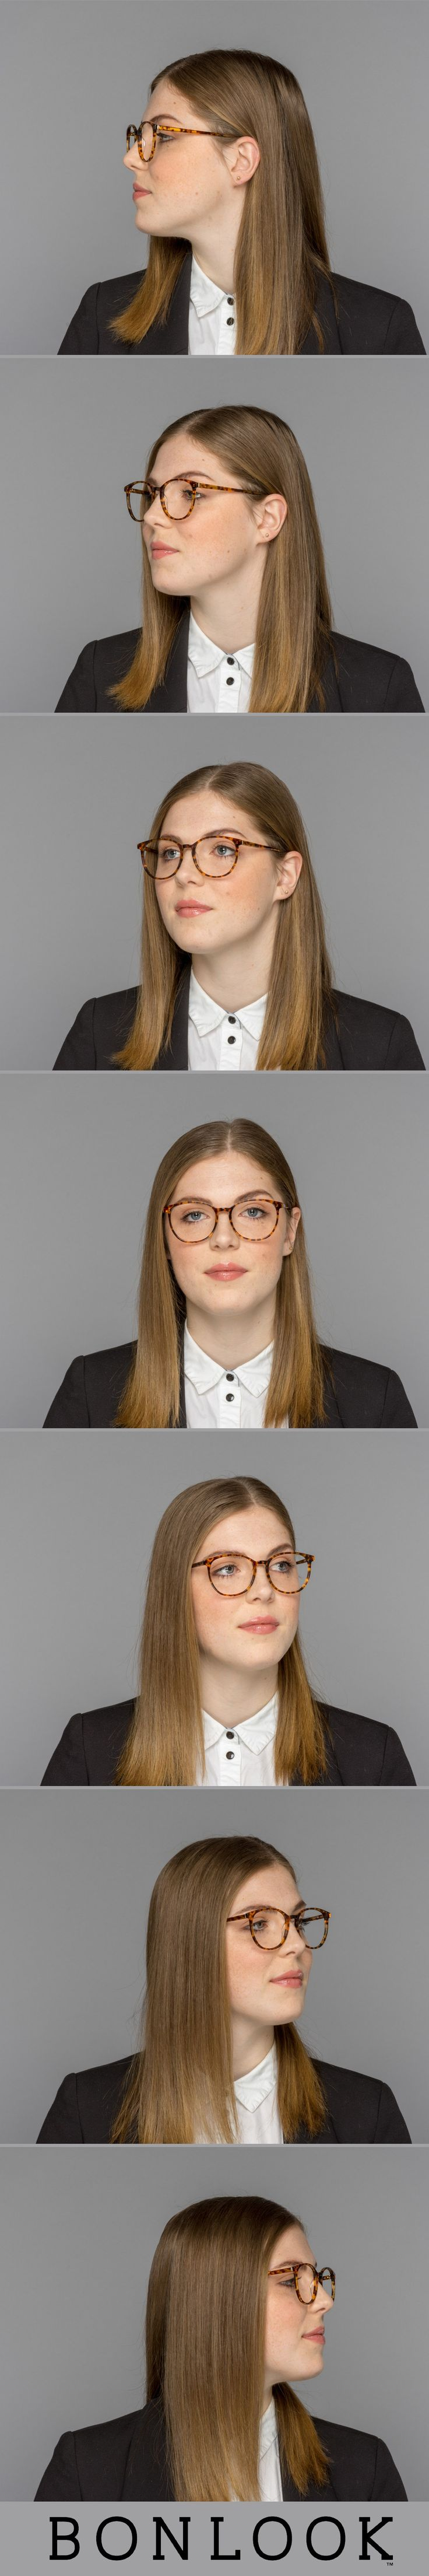 Femme Libre Josette - These geek-chic frames are a collaboration with Canadian journalist, author, and women's rights activist Liz Plank. These lightweight and oversized eyeglasses have tons of attitude—and the same probably goes for she who dares to wear them!